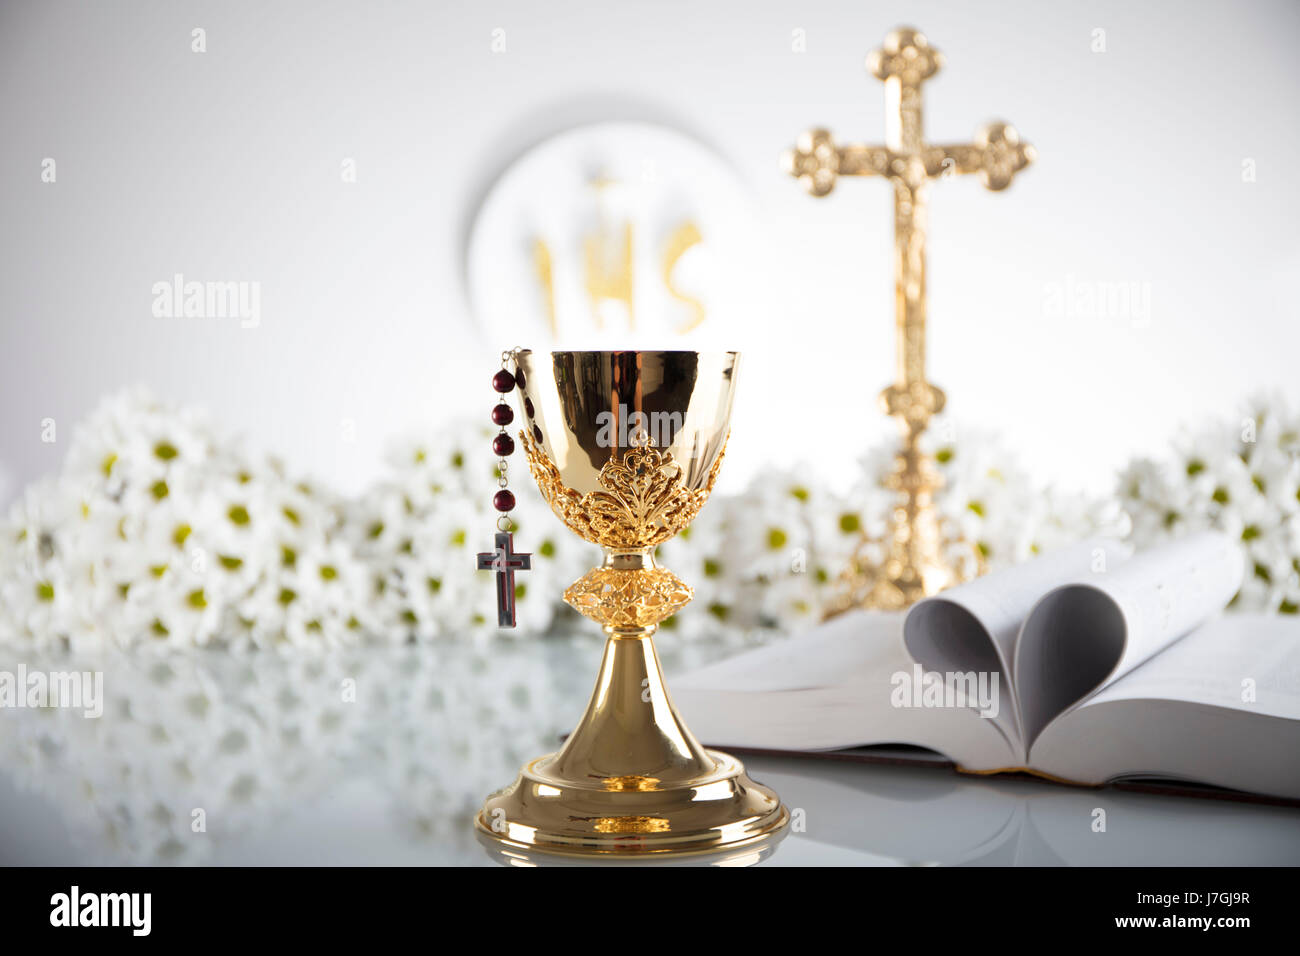 The catholic religion proved by protestant bible mexico mexican first holy communion catholic religion theme crucifix bible catholic religion buycottarizona Image collections